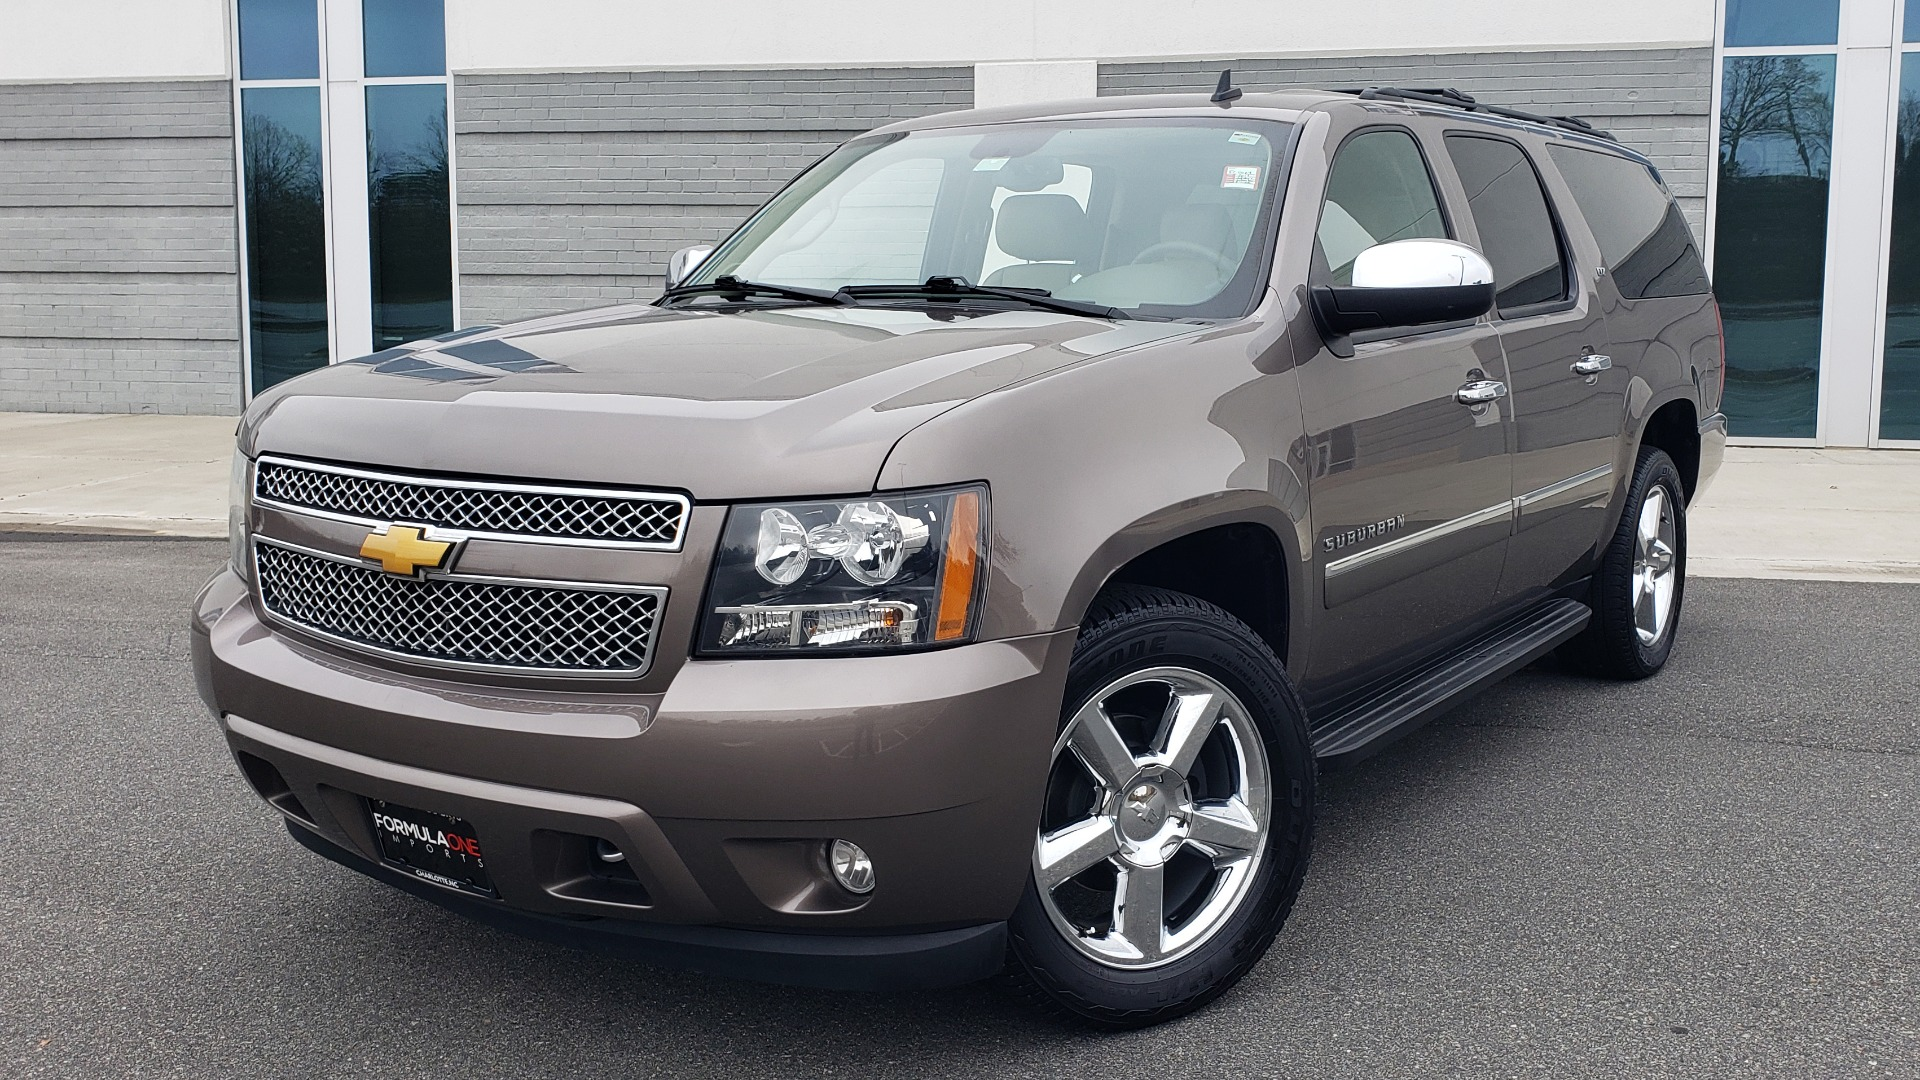 Used 2014 Chevrolet SUBURBAN LTZ / 4WD / ENTERTAINMENT / NAV / SUNROOF / TRAILER PKG for sale Sold at Formula Imports in Charlotte NC 28227 1